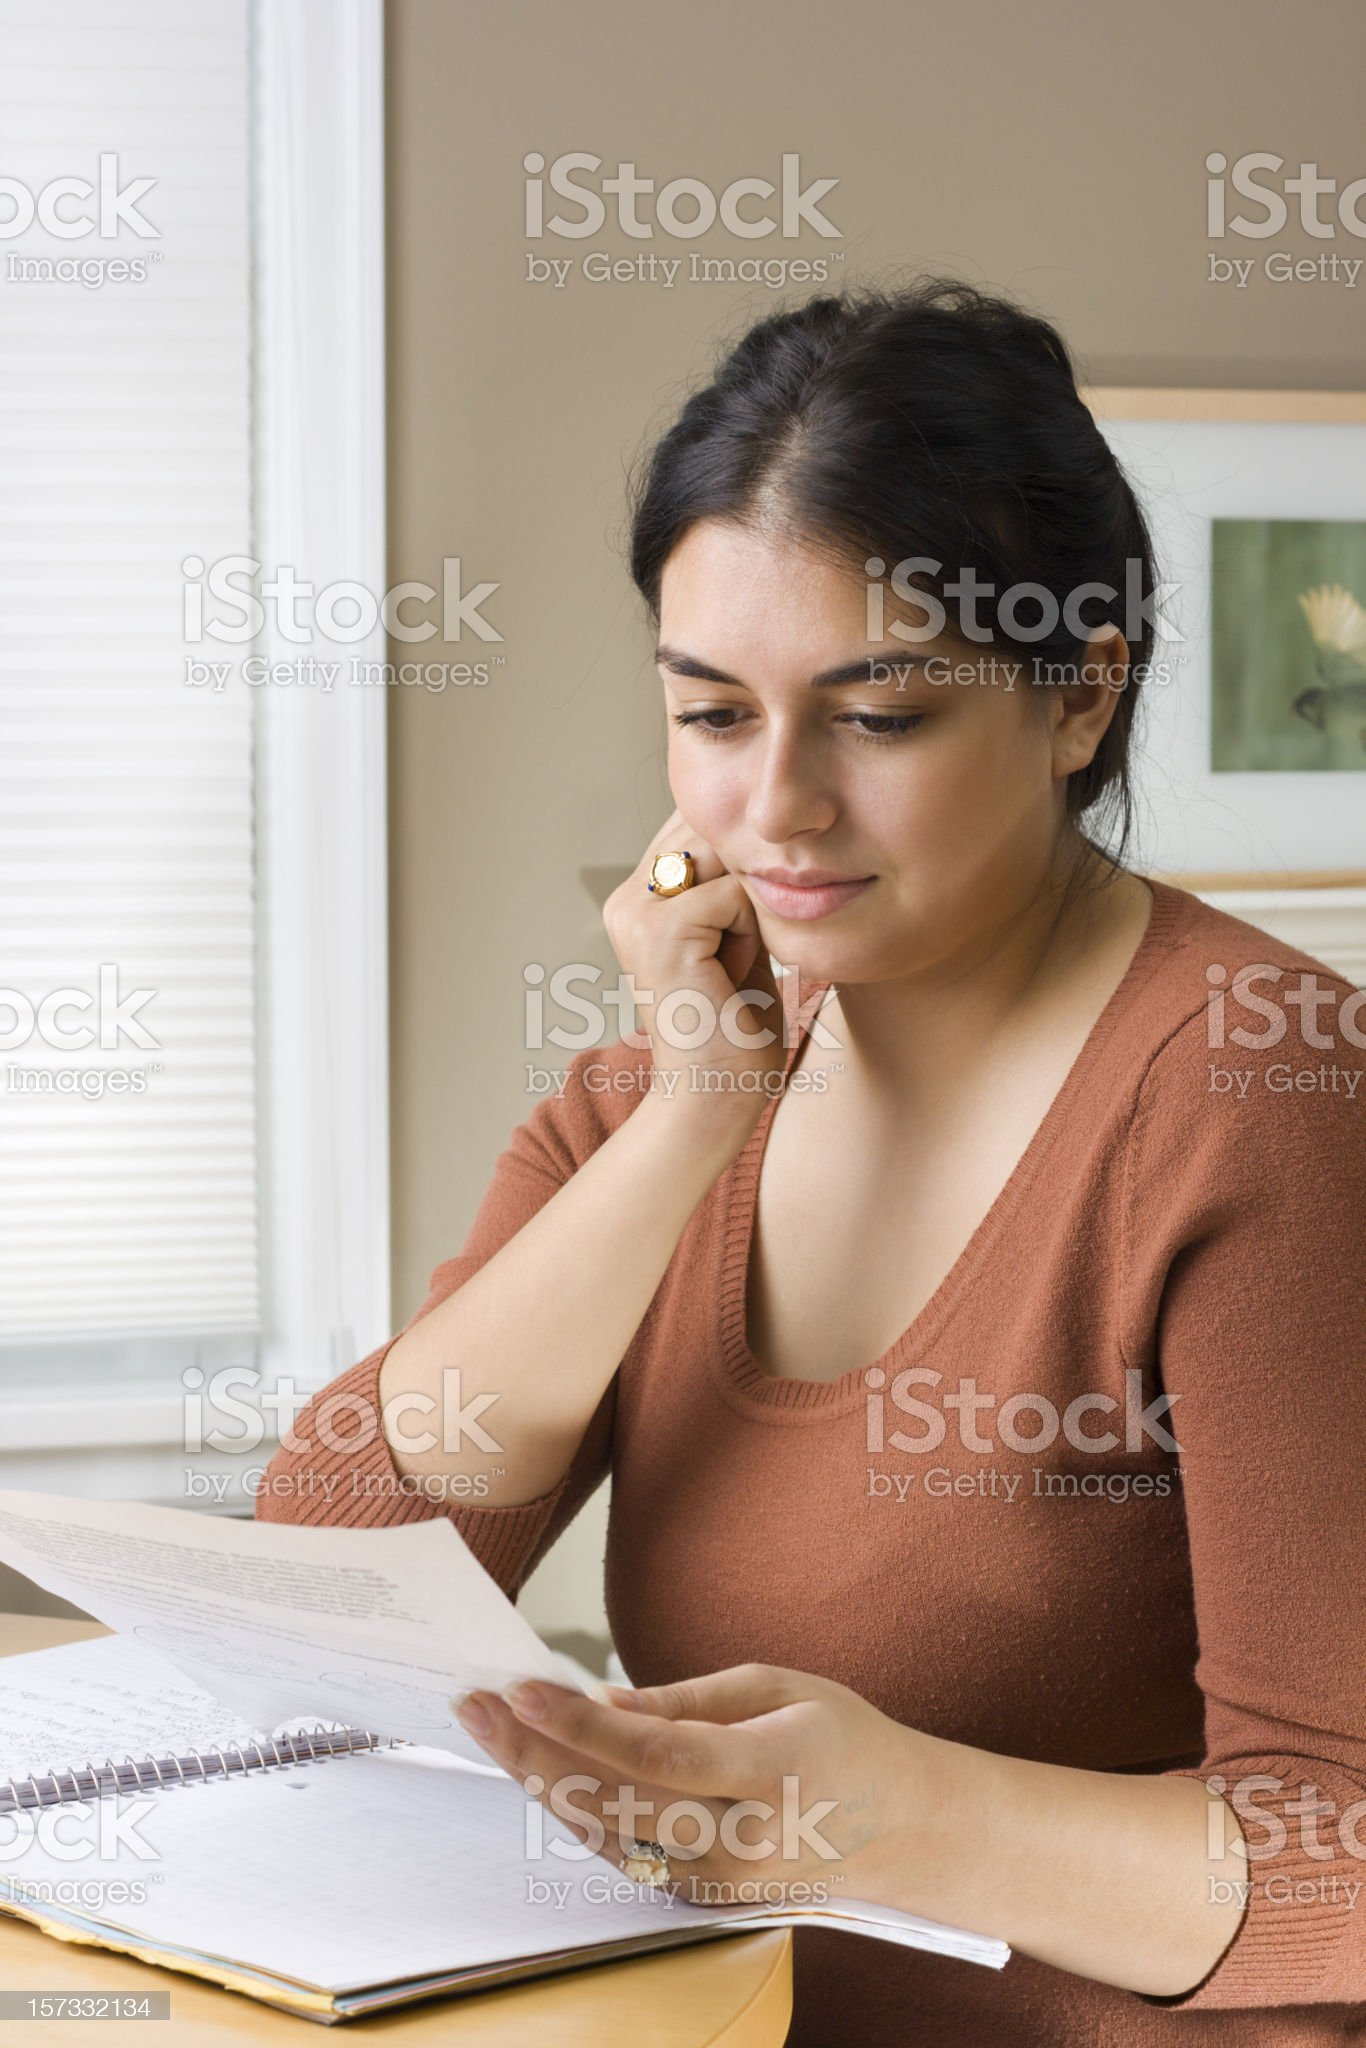 Adult Woman Student Studying for University Exam, Thinking and Learning royalty-free stock photo